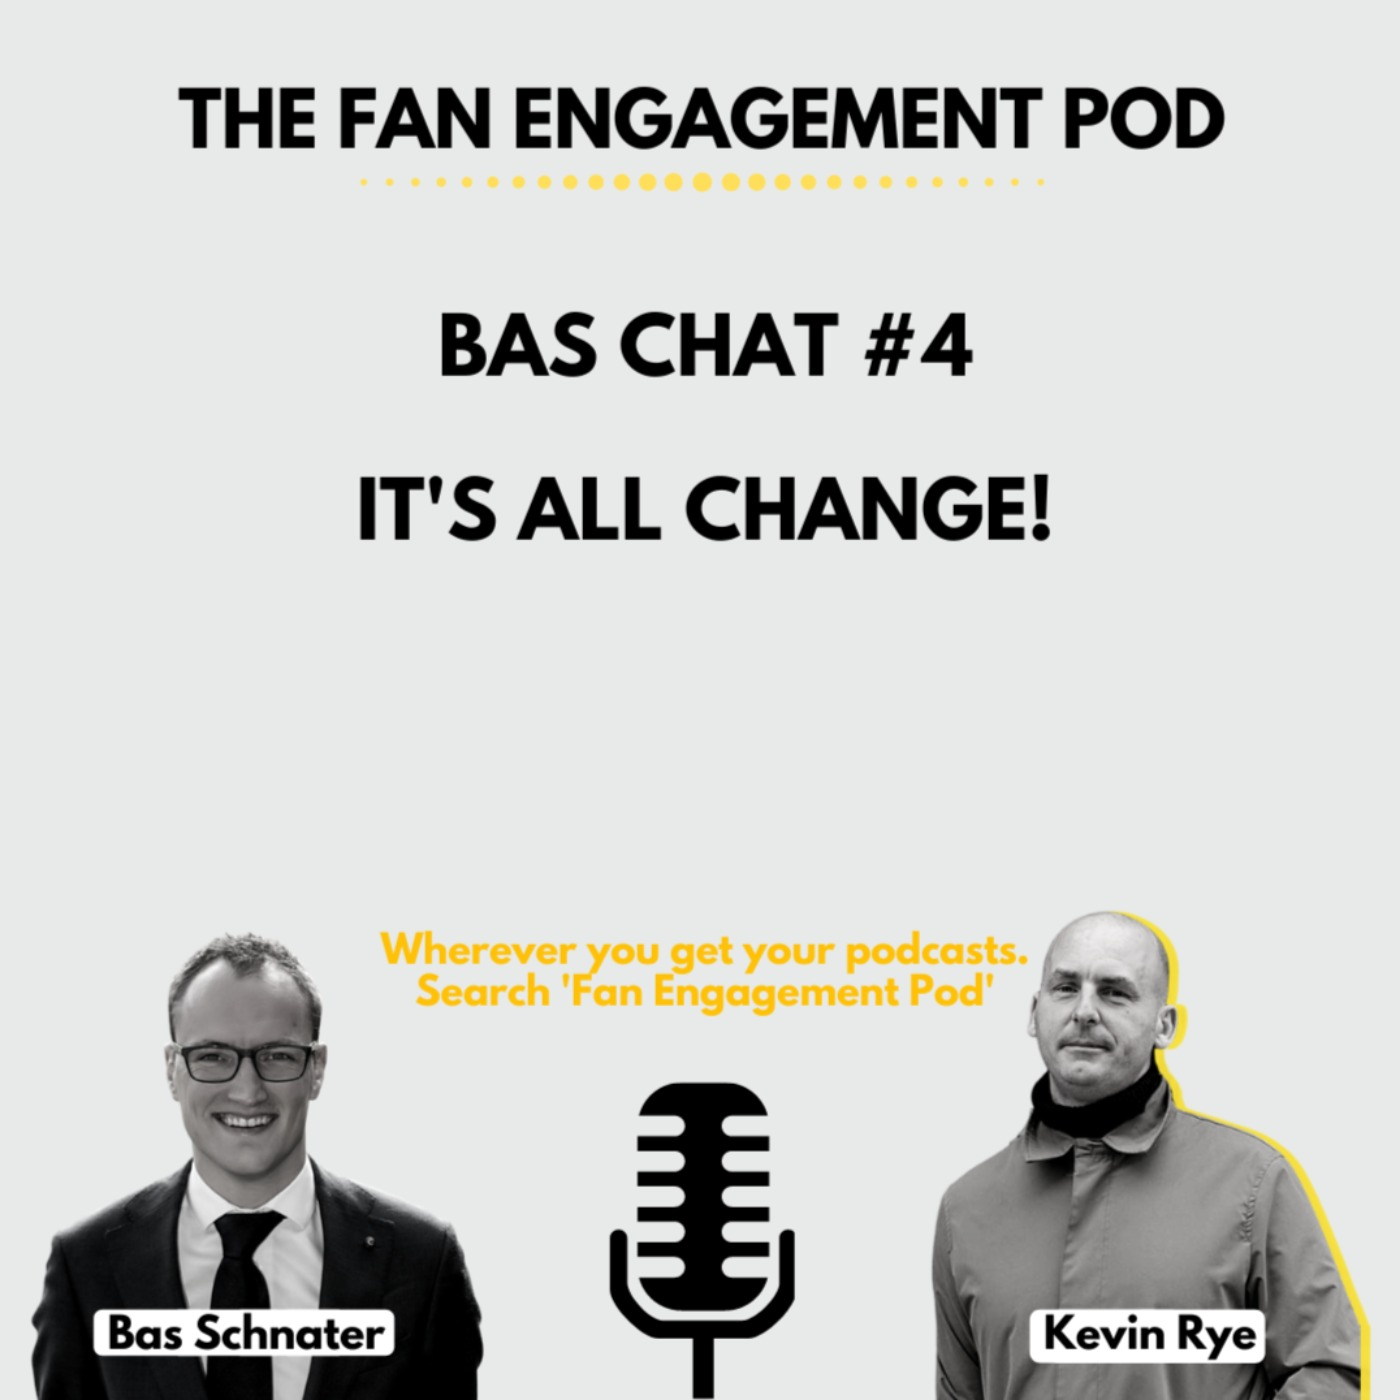 All change: it's BasChat #4